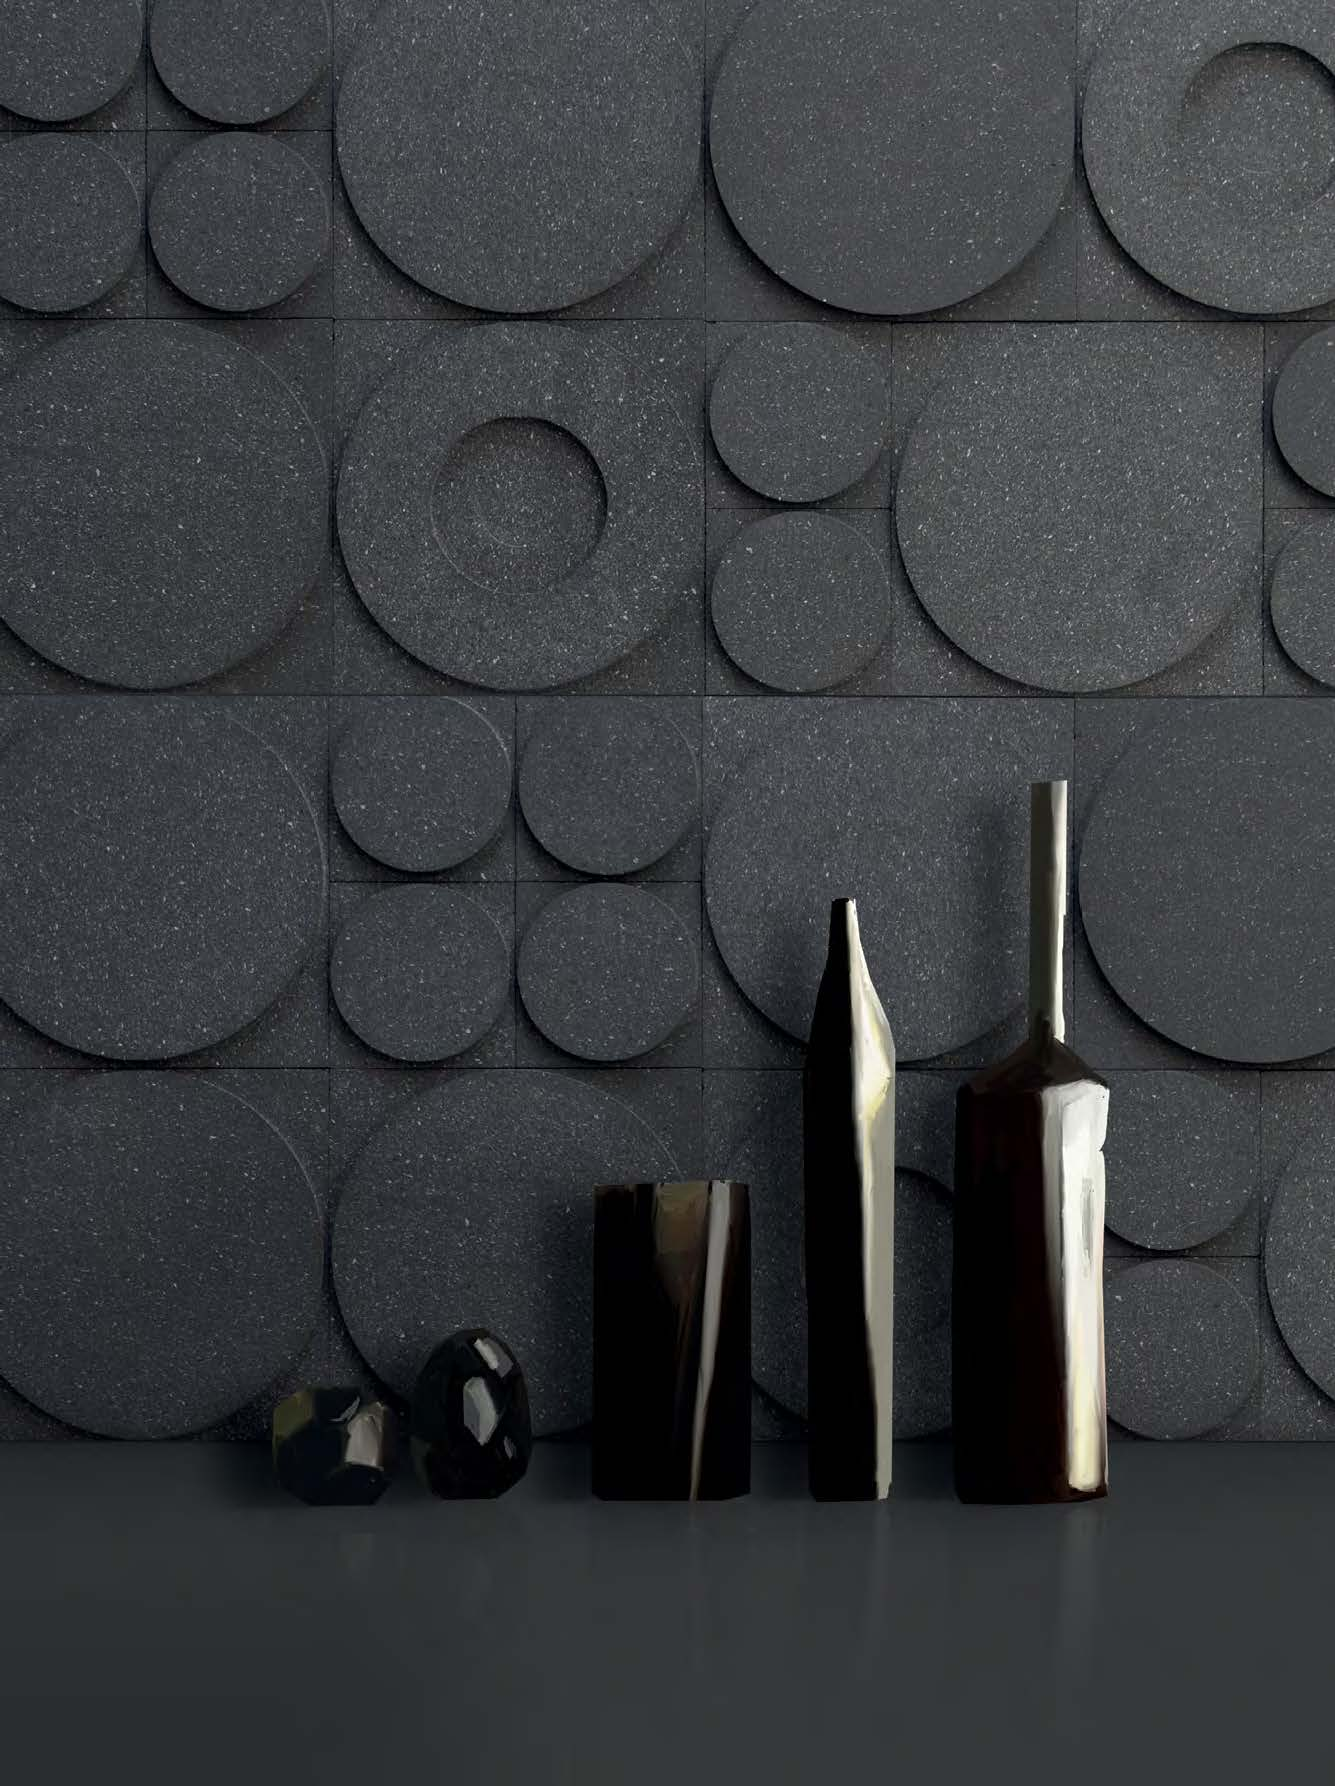 NEROSICILIA | Etna Lava Stone Surfaces